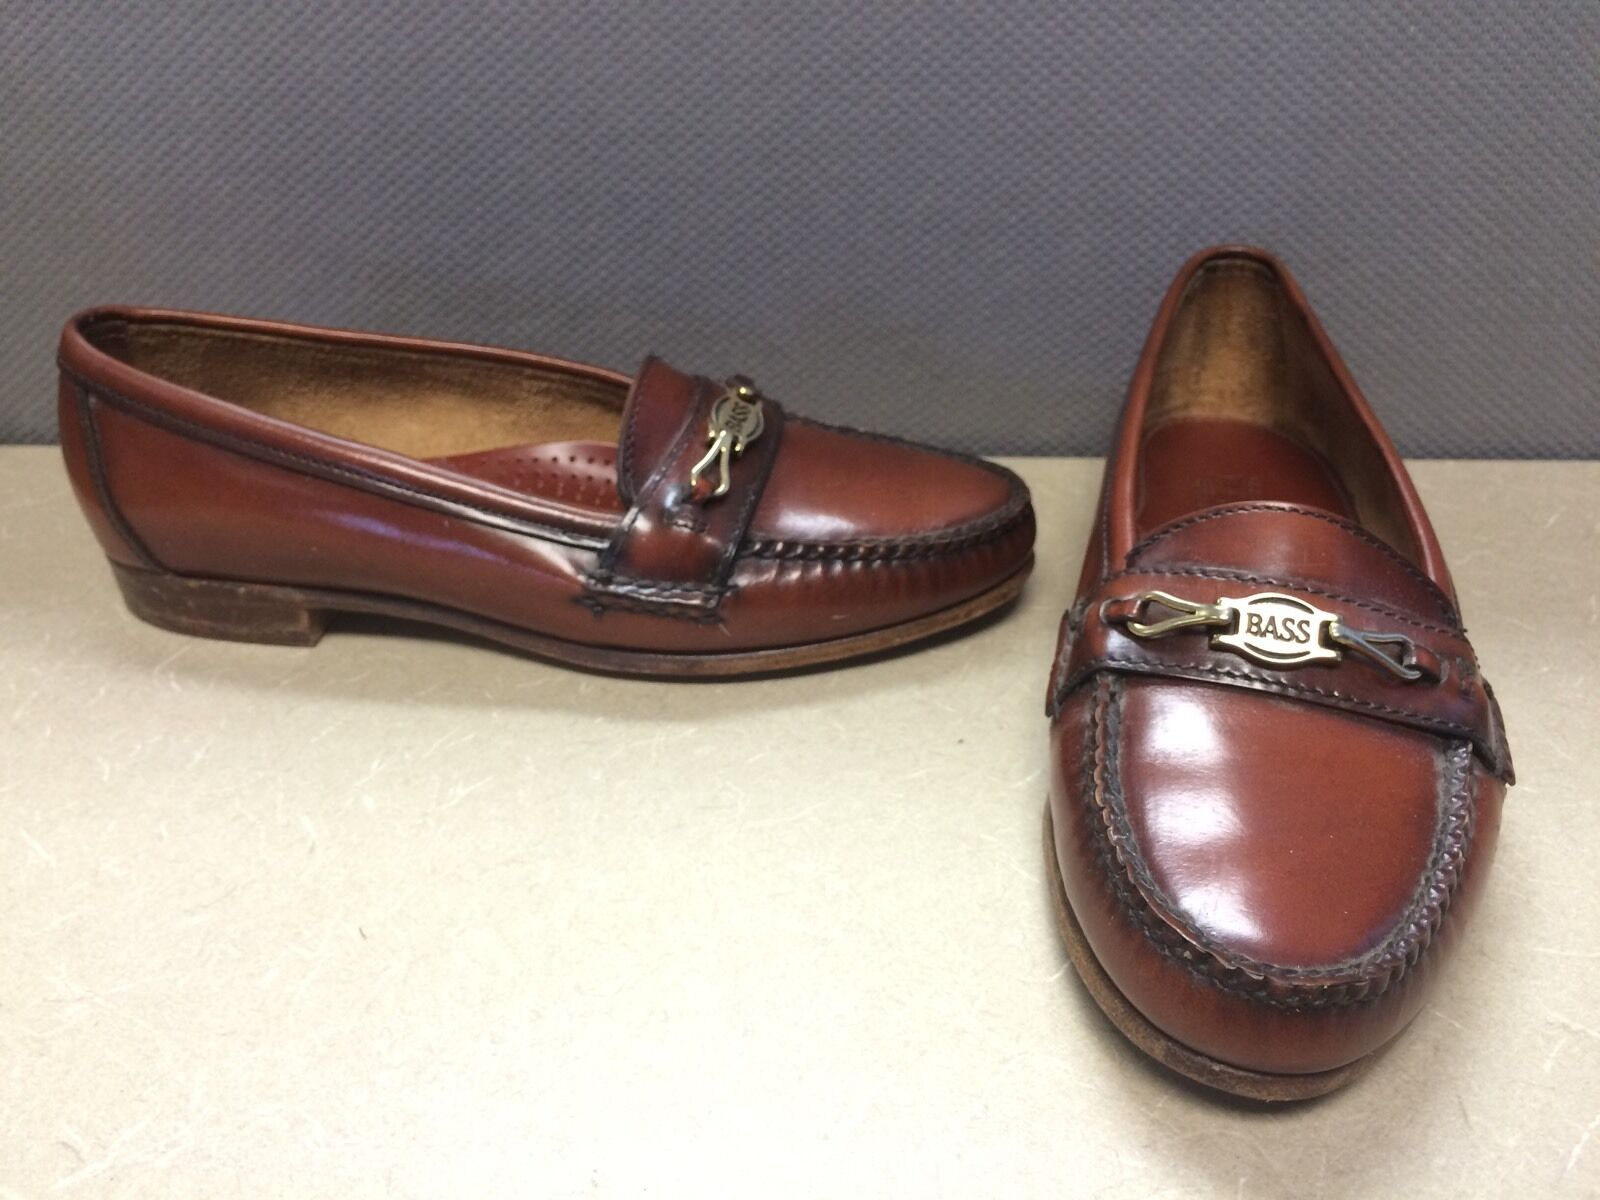 Vintage Bass Moc Toe Marronee Loafers donna Dimensione 6.5M